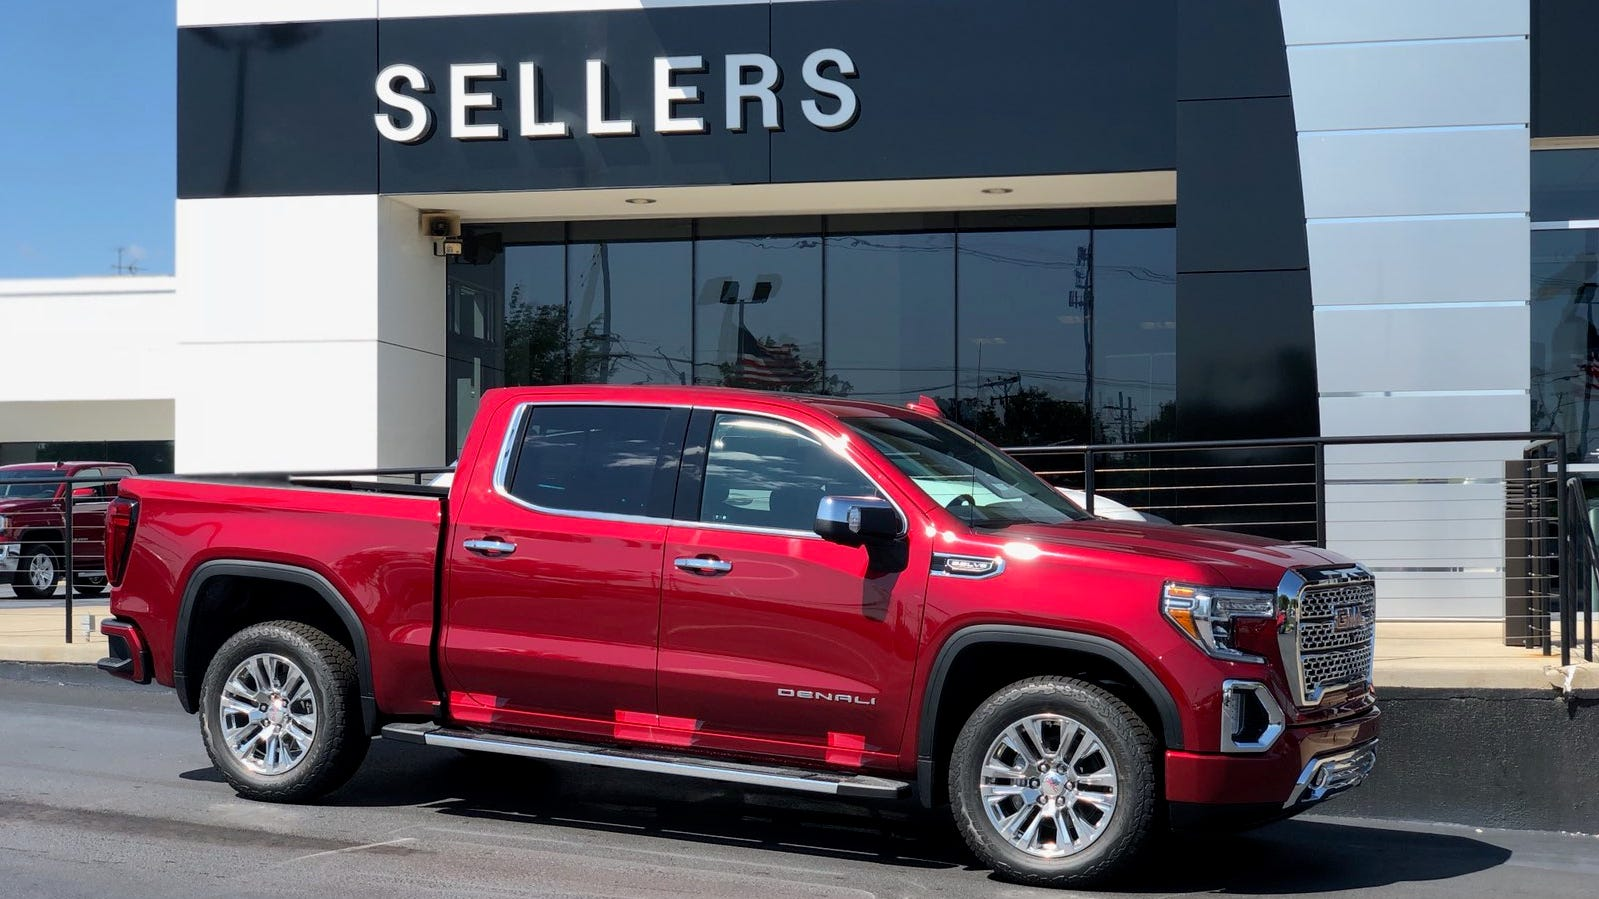 Gmc Bill Pay >> GM's new trucks are trickling to consumers, selling fast